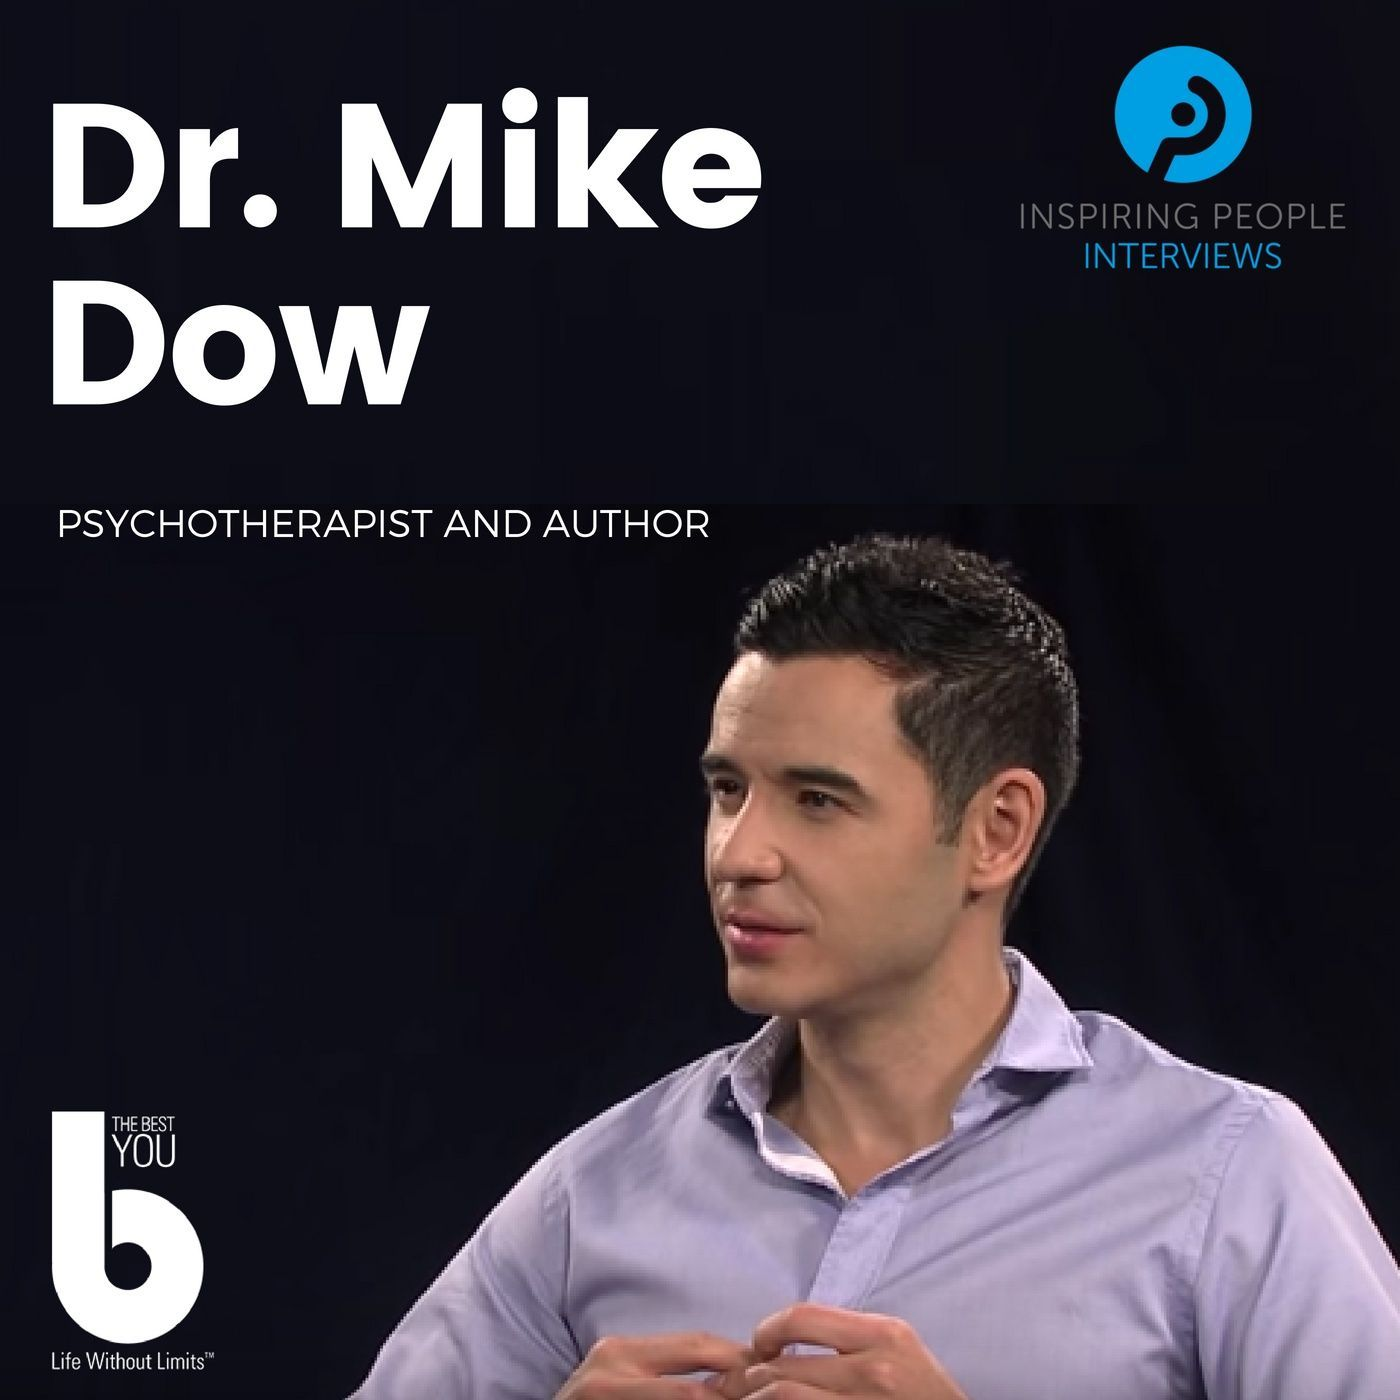 Listen to Episode #5: Dr. Mike Dow